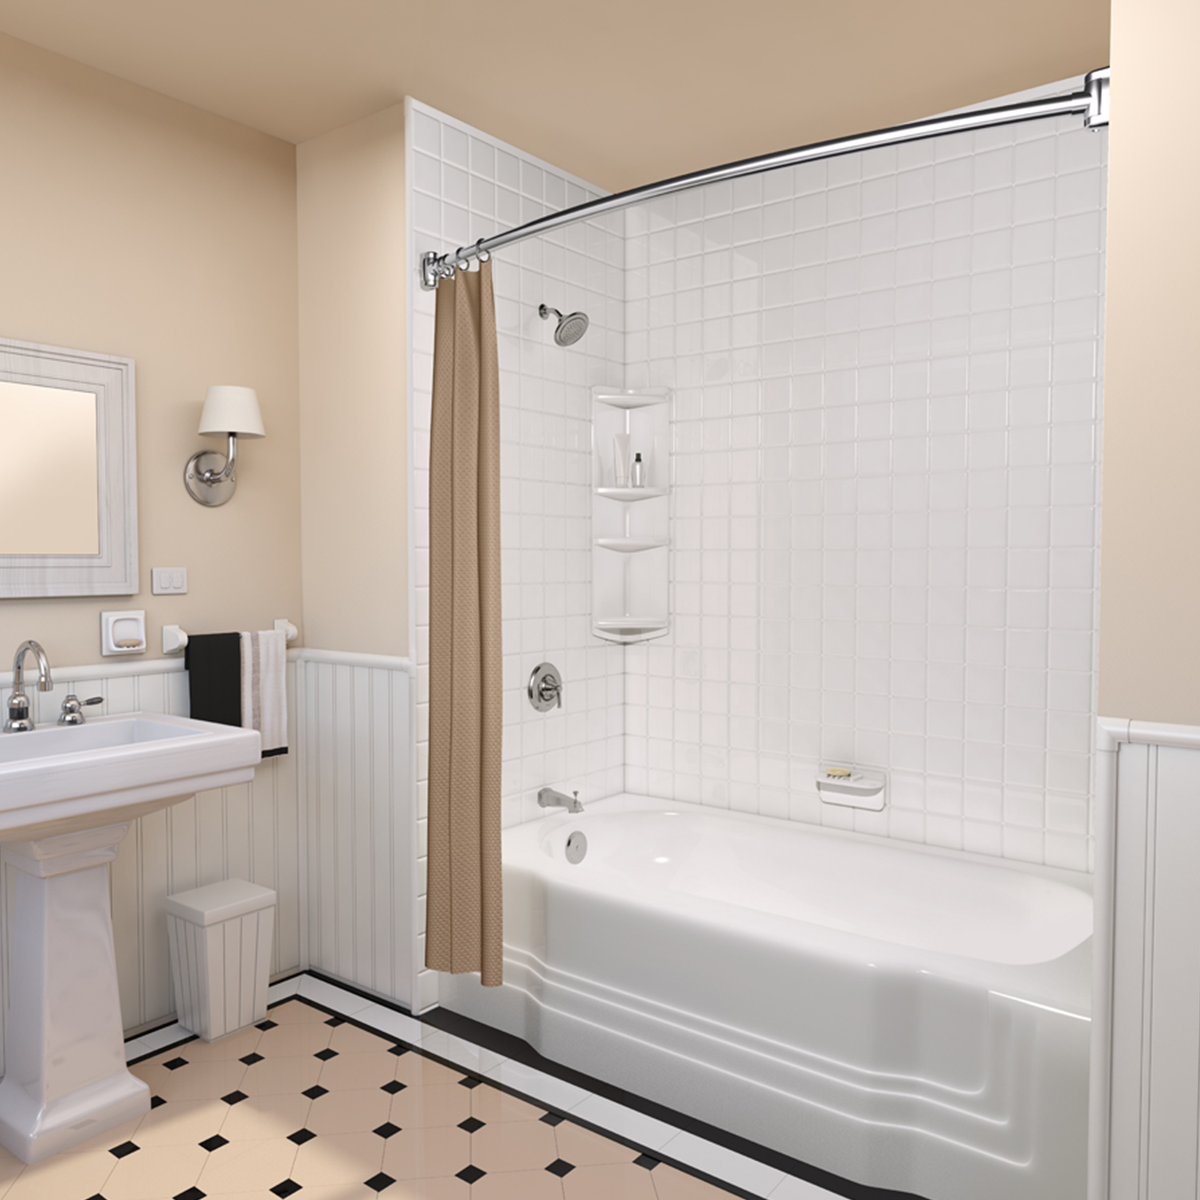 A Bath Fitter Remodel Makes Your Entire Bathroom Feel New Bath Fitter Bathroom Fitters Fitted Bathroom